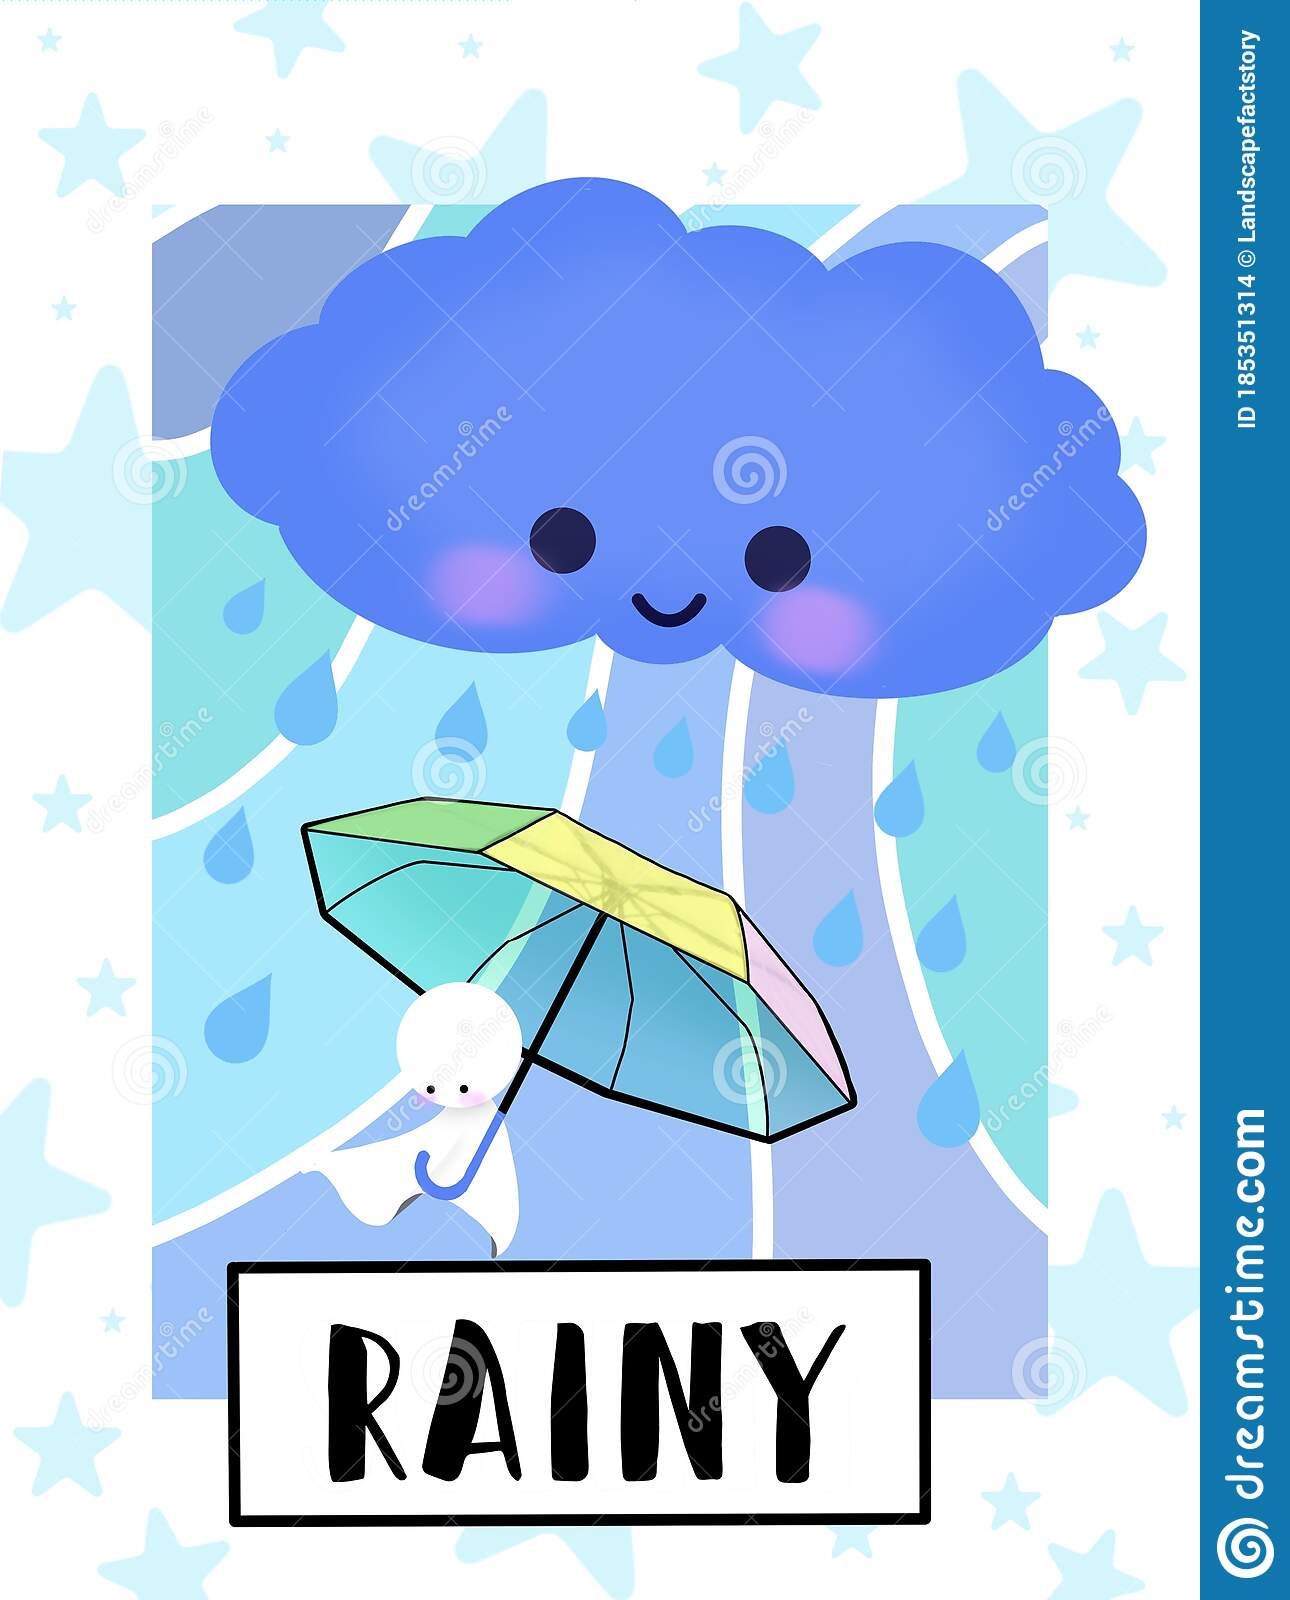 Rainy Weather Flashcard Collection For Preschool Kid